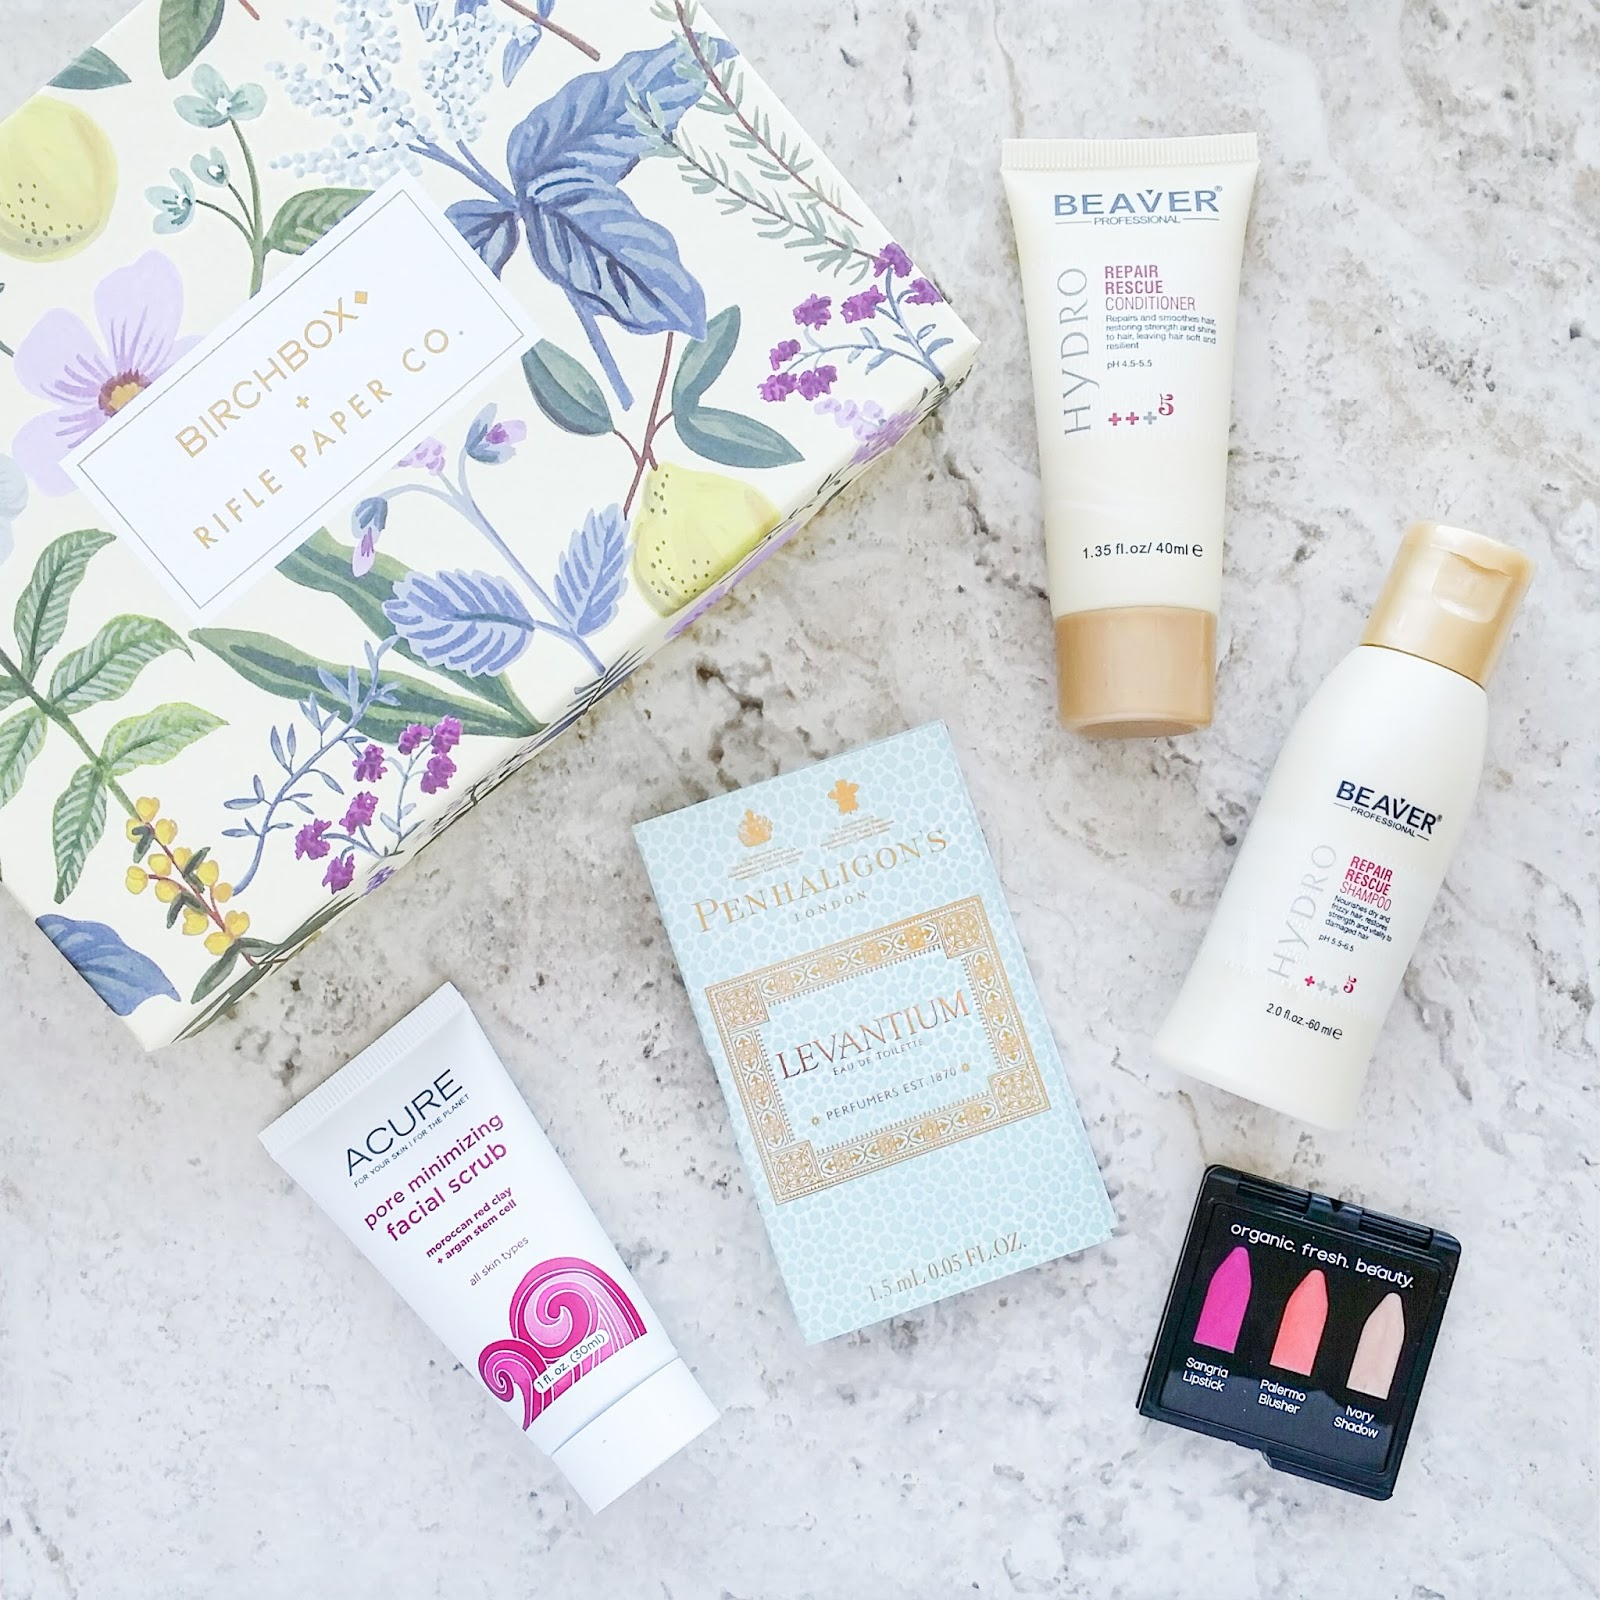 Subscription Box April 2016 Birchbox Review | www.thebellainsider.com